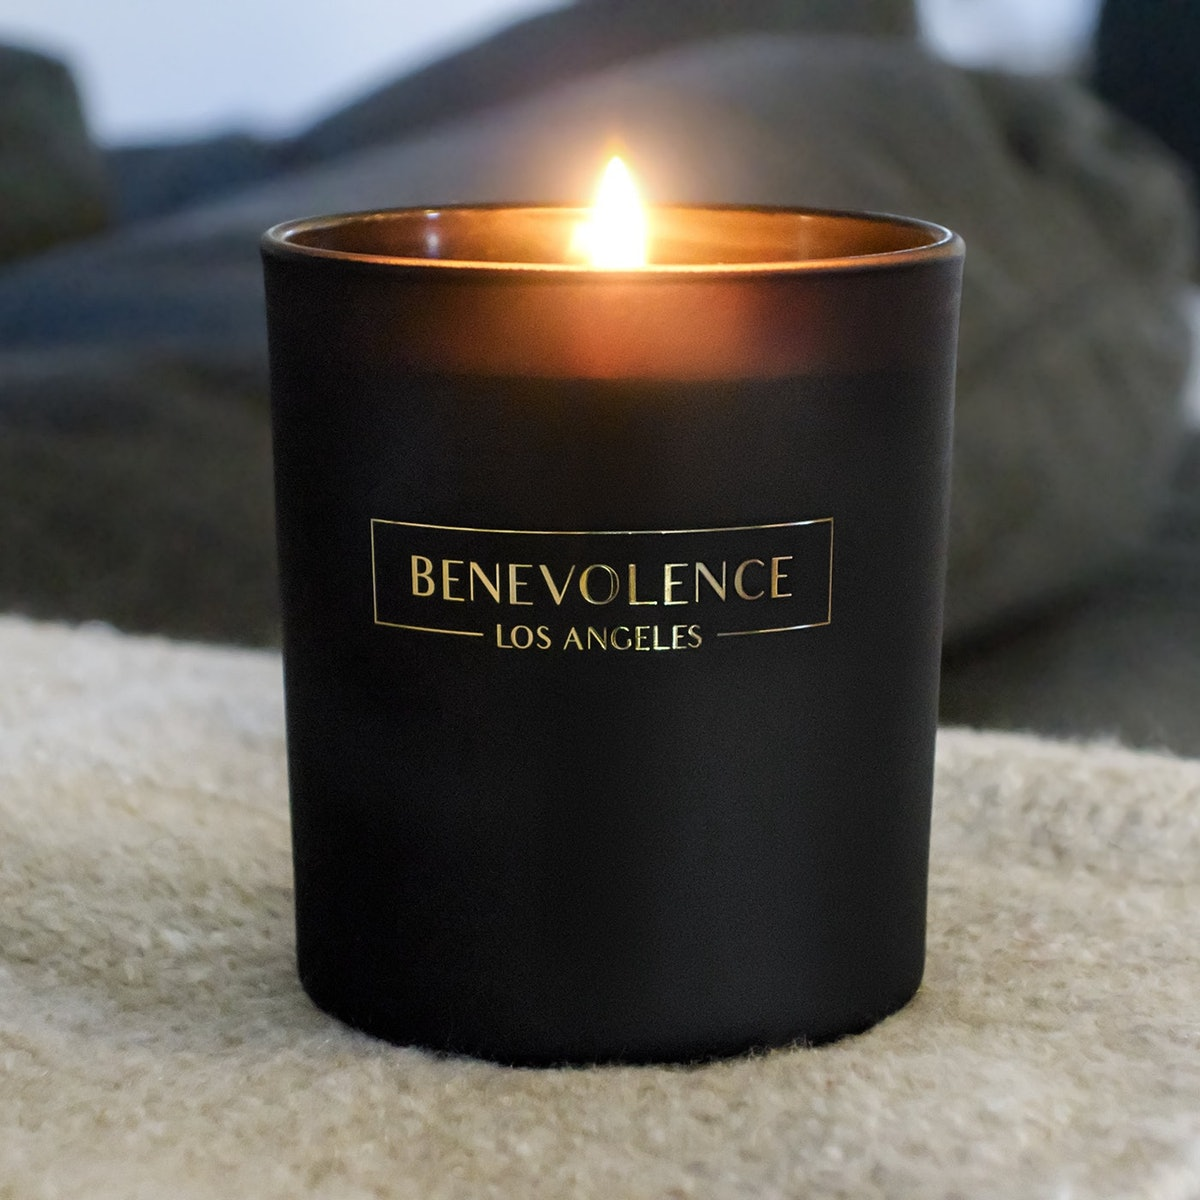 Benevolence LA Scented Candle